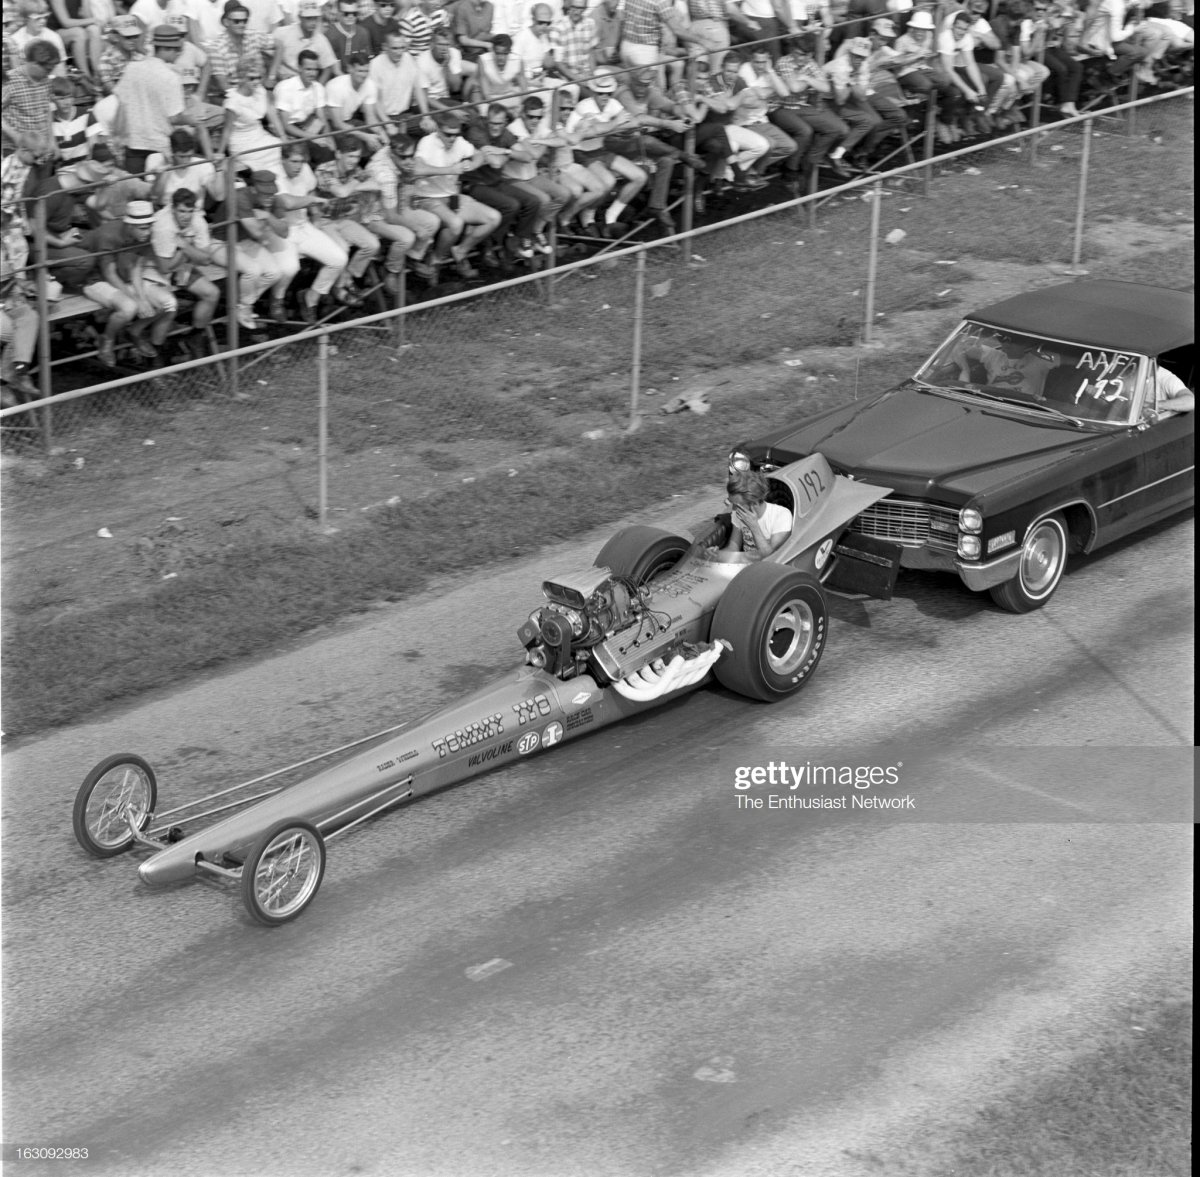 1  Tommy Ivo With Dragster pushed by caddy back to pits.jpg